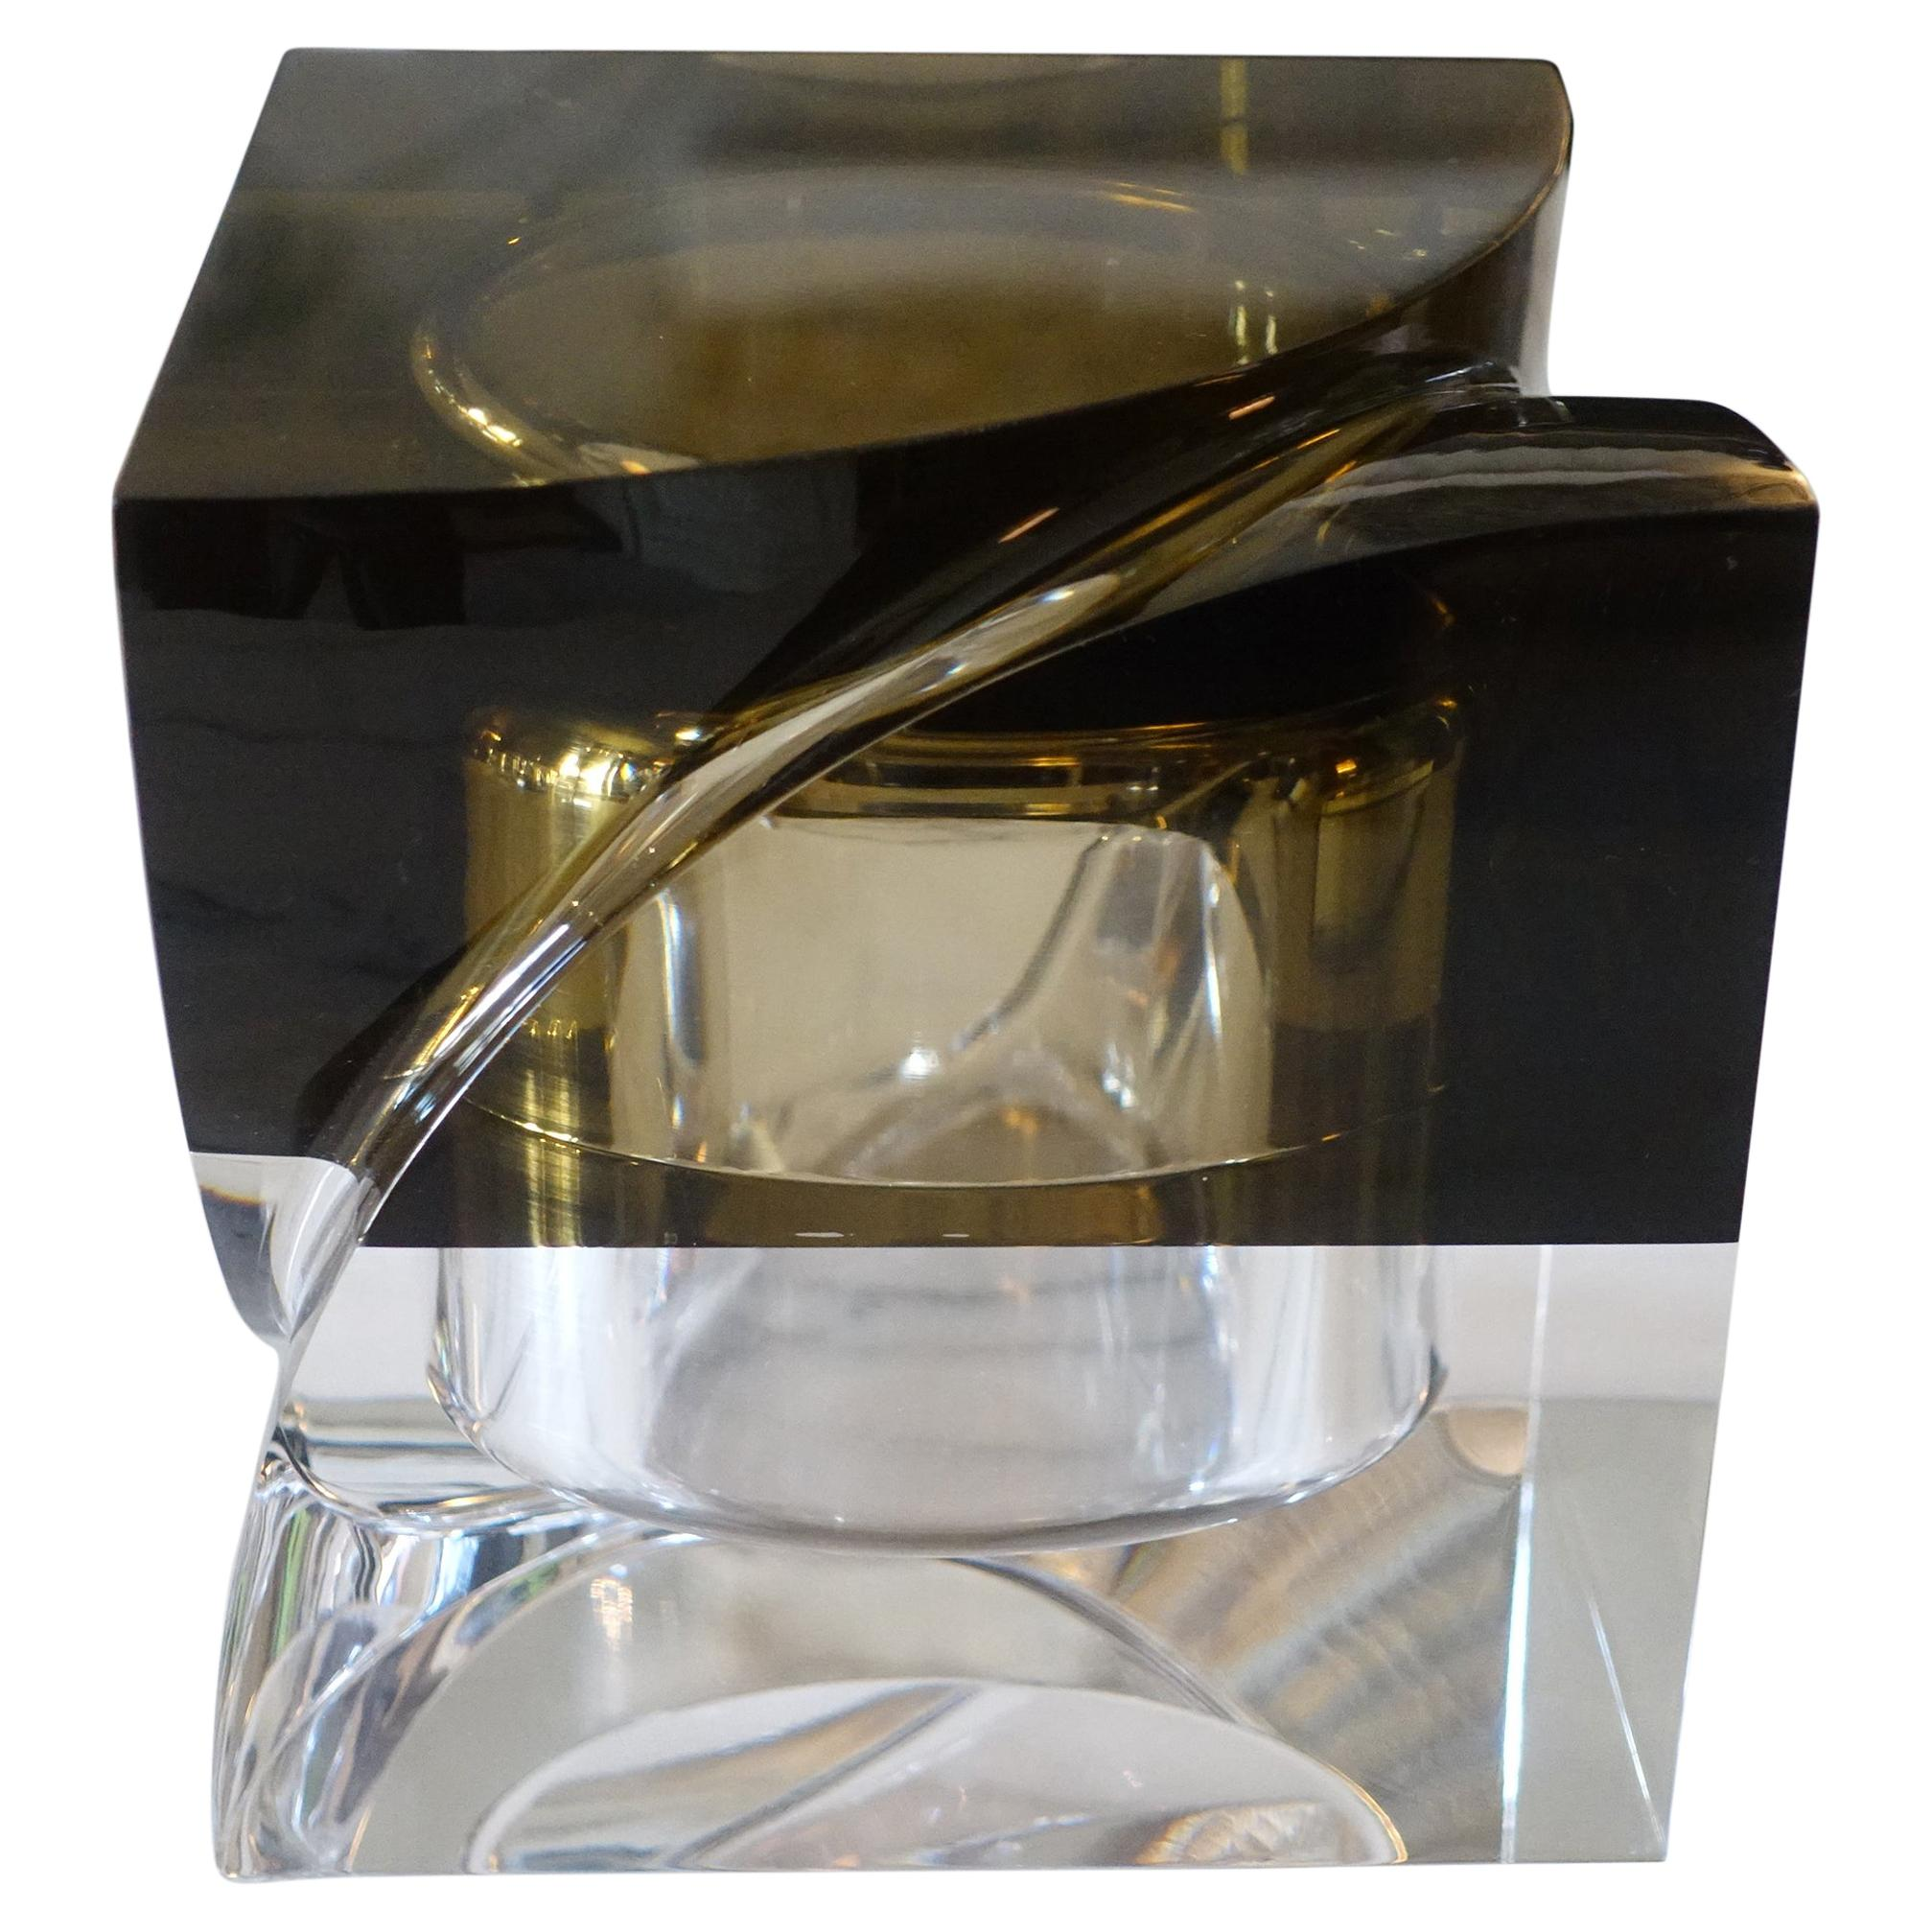 Flair Edition Big Decorative Box in Amber and Clear Lucite, Italy, 2021